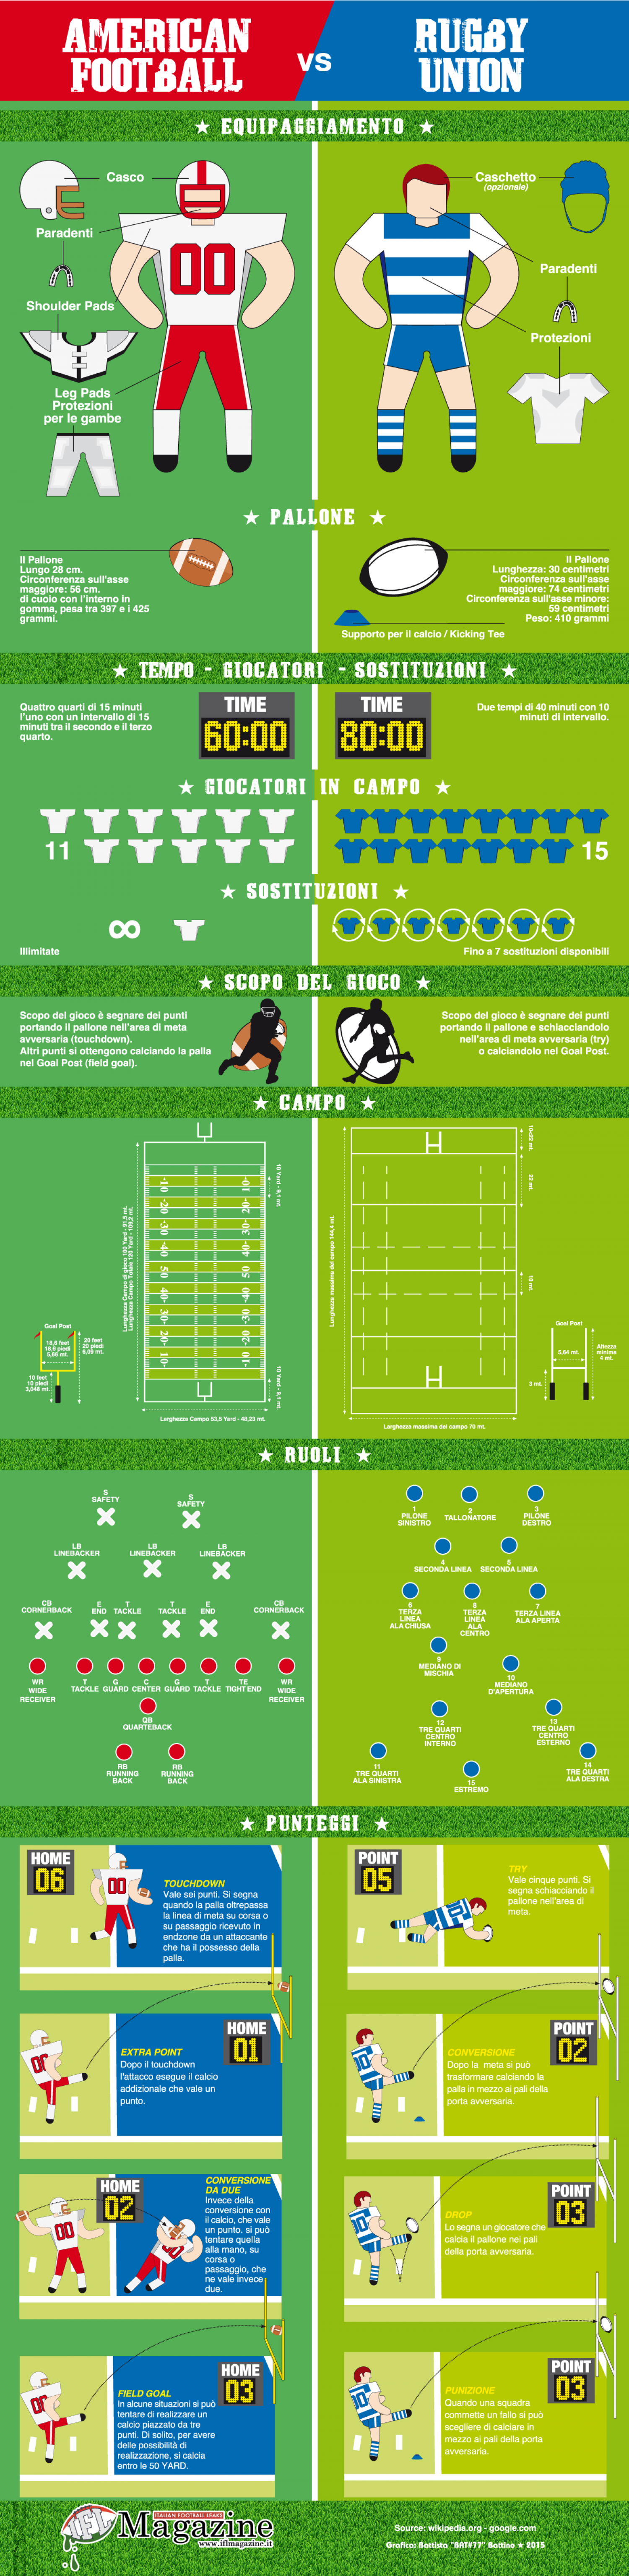 rugby vs american football American football vs rugby comparison american football is a game played between two teams and consists of 11 players in each of the two teams, with unlimited a.